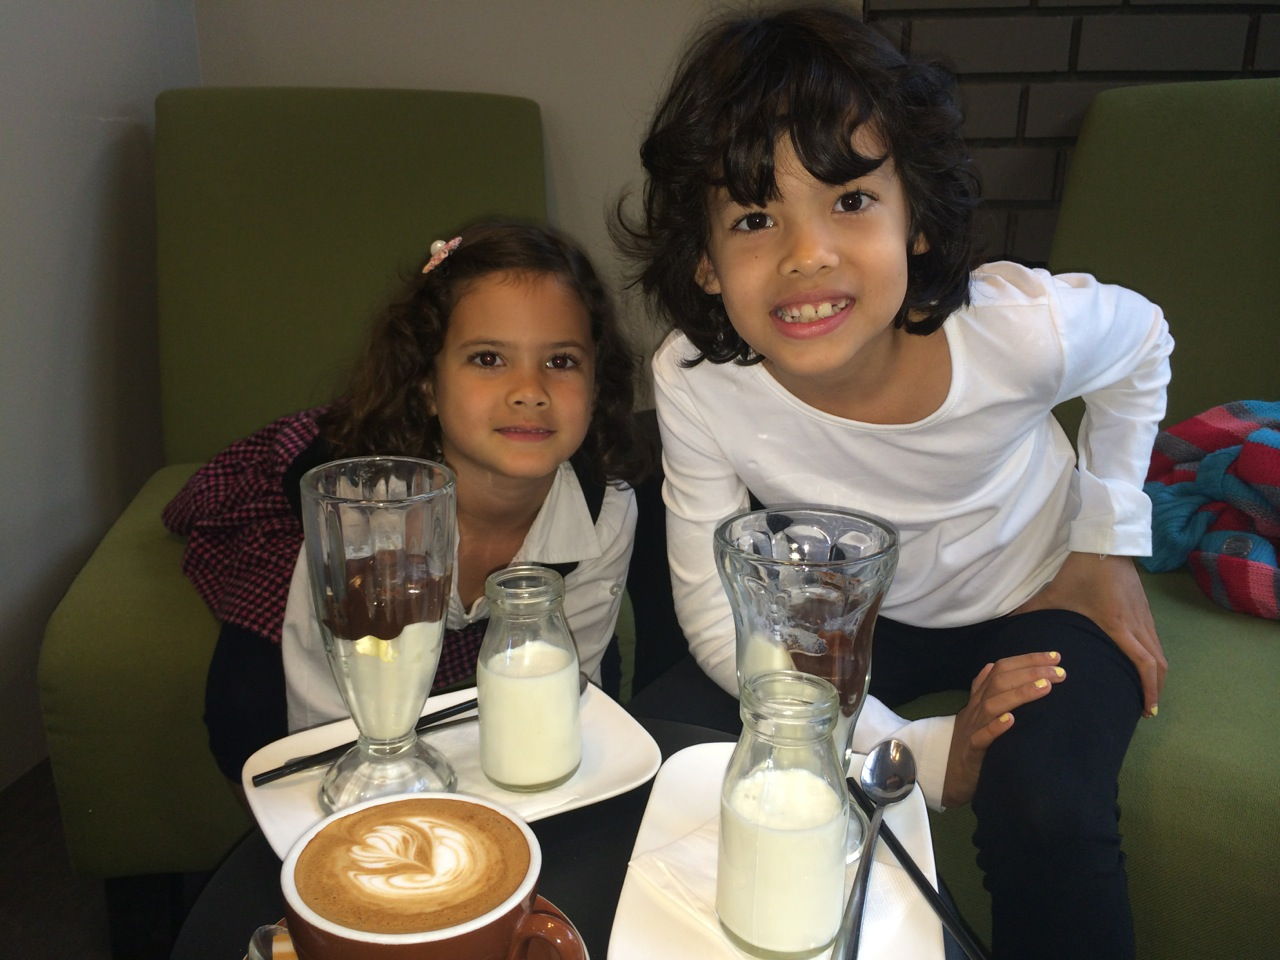 Here are the girls enjoying at Chocolate Milkshake while I have a Latte at the The Terrace, Number 19 Picadilly Arcade in Tauranga.